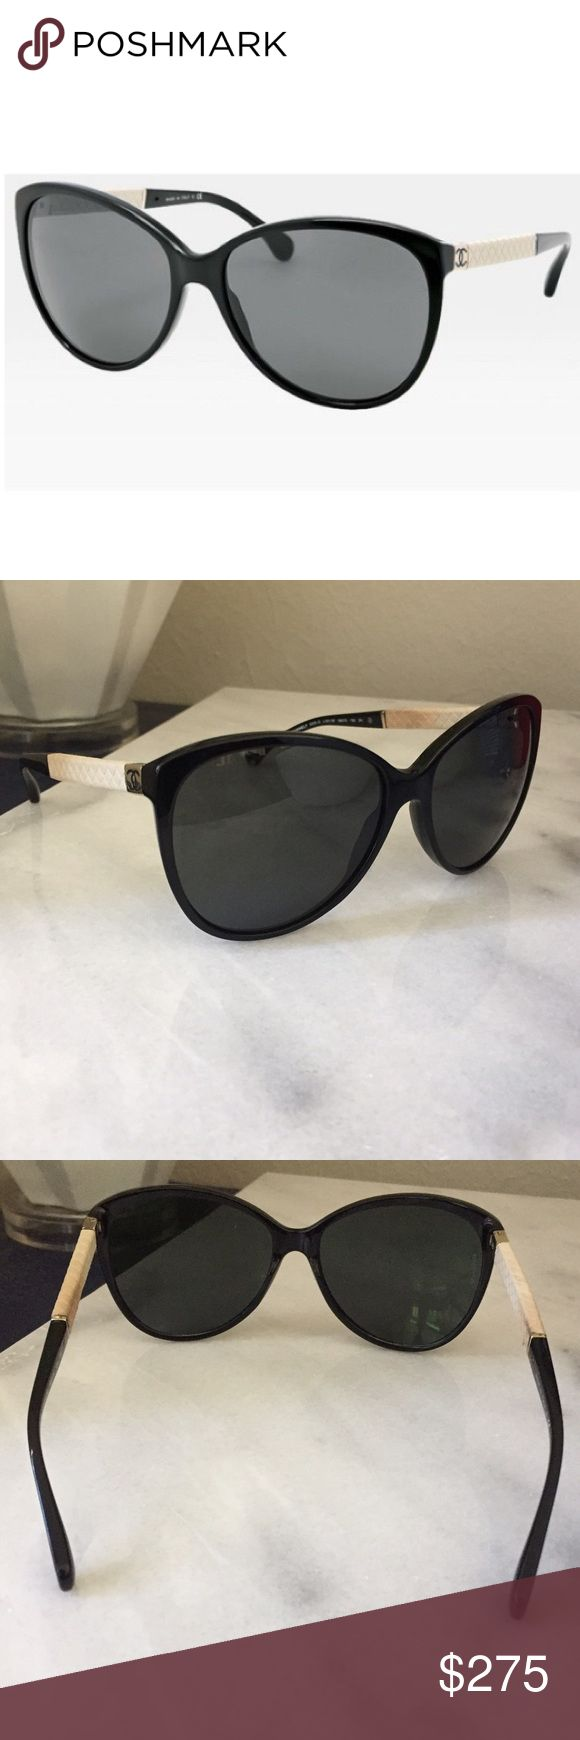 RARE: Chanel Sunglasses 5225Q Chanel Sunglasses 5225Q Black and White. These are used and have makeup stains on the sides. Priced as such. 100% authentic and no scratches. Pls ask questions :) comes with original glasses case, cloth, and box. CHANEL Accessories Sunglasses